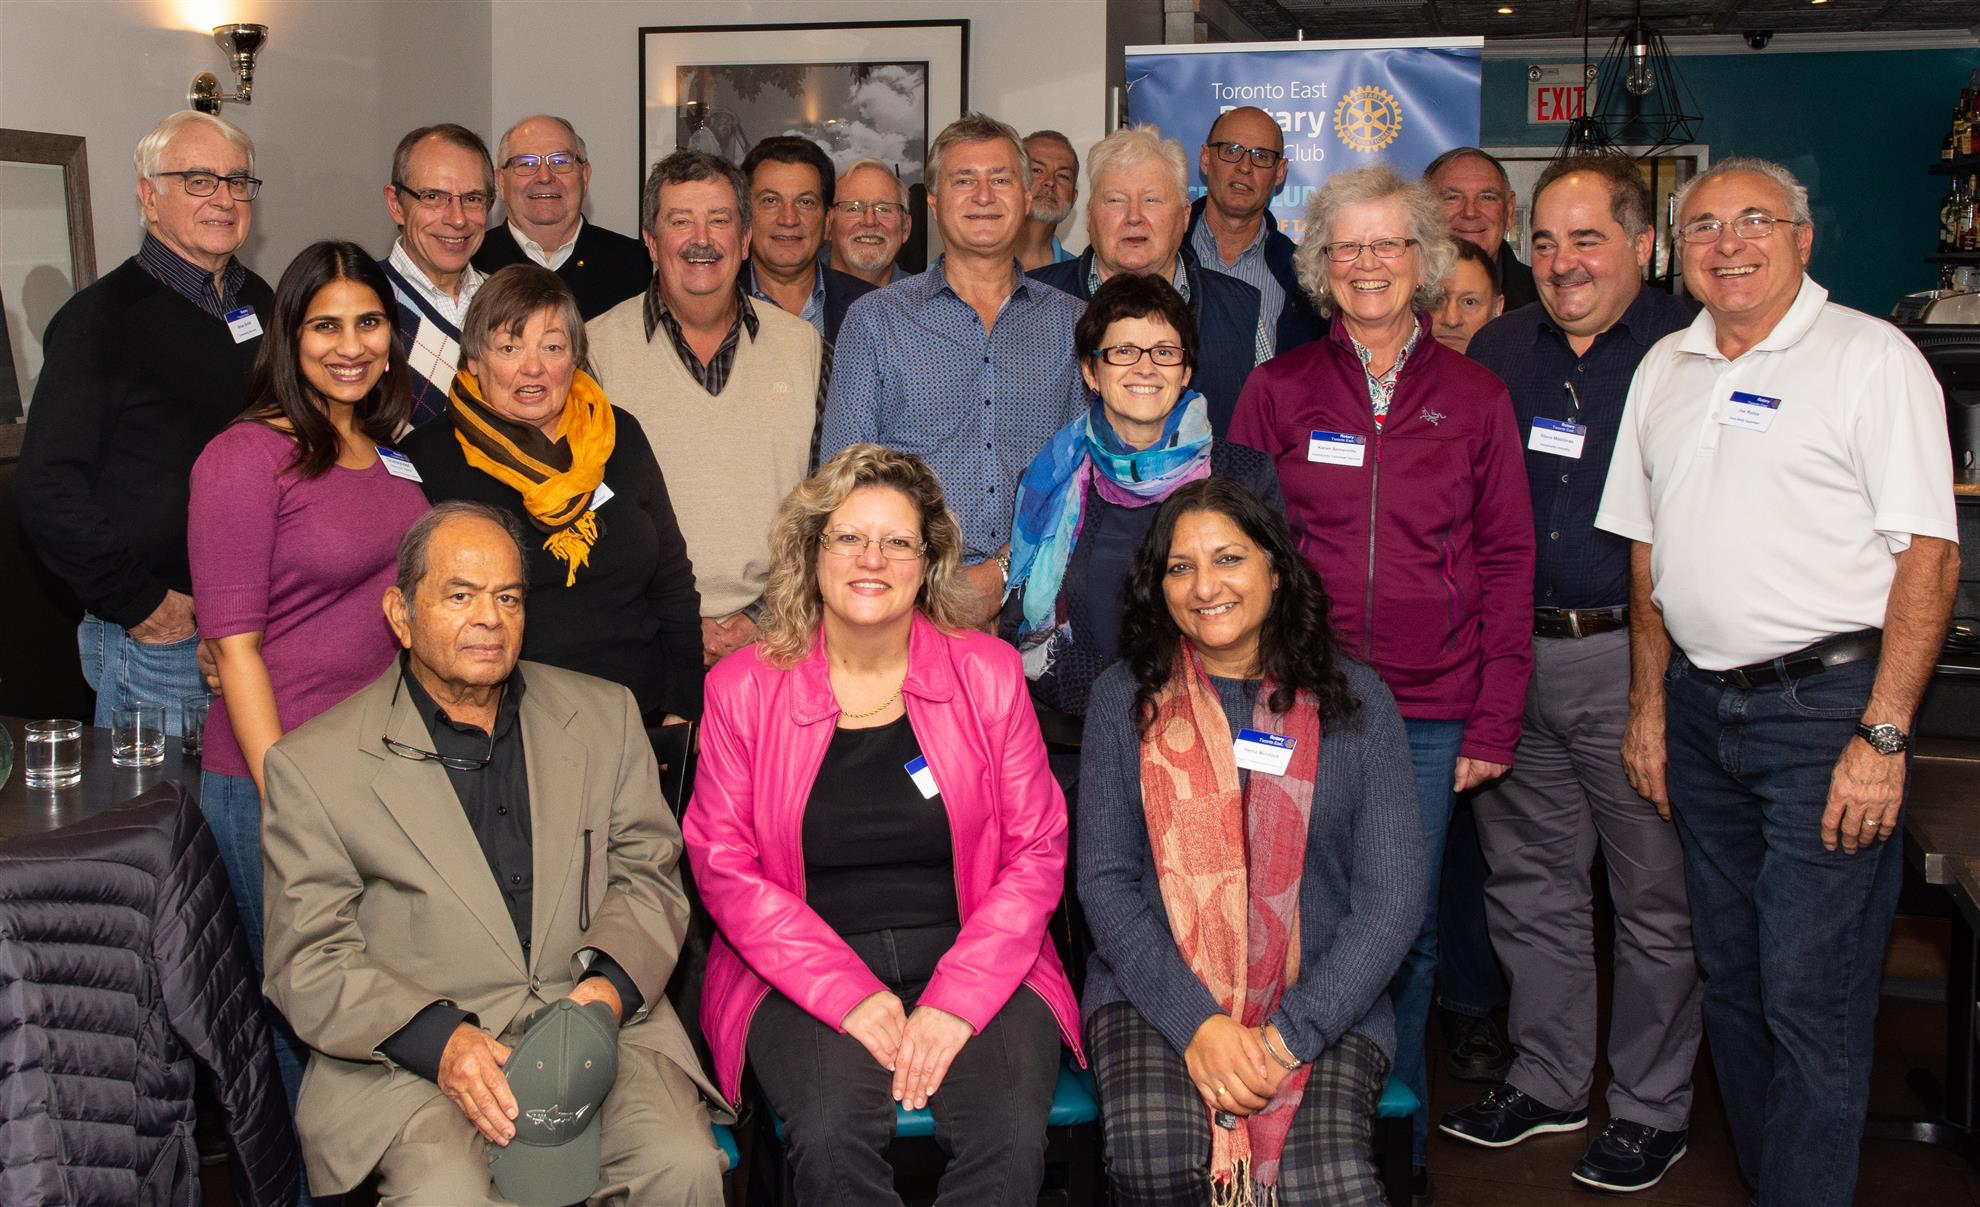 Toronto East Rotary Club Members - October 2018